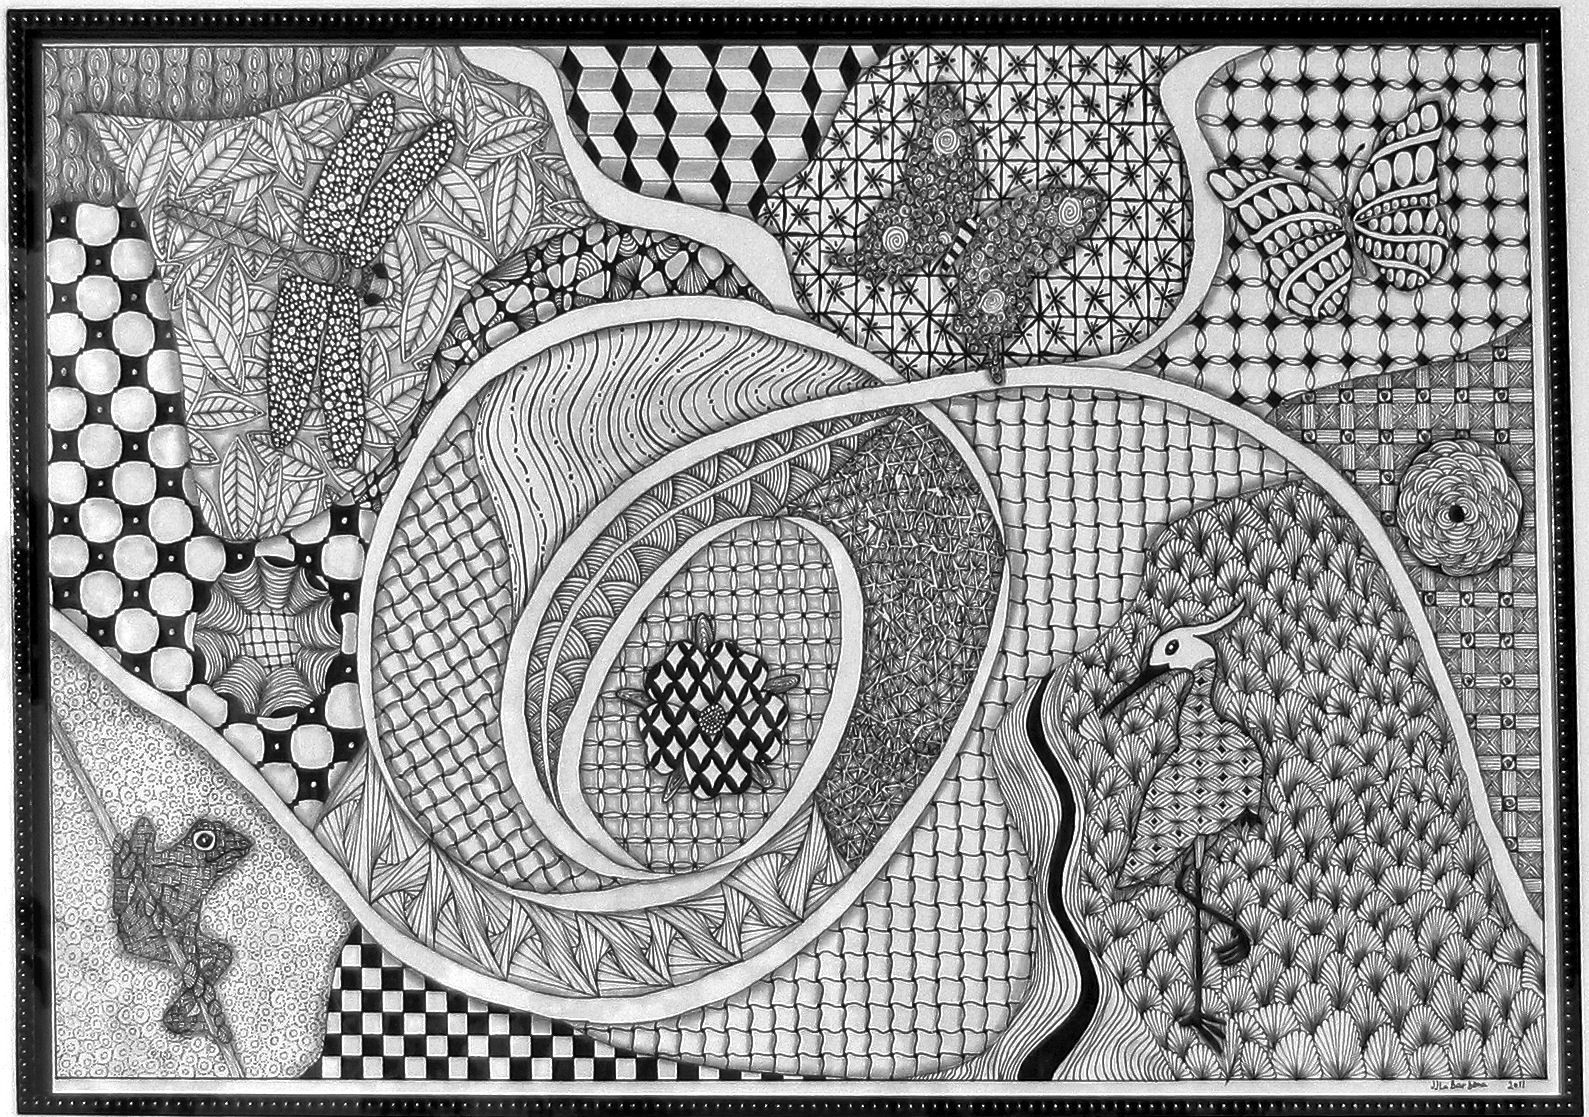 Nature Tangle. Animal and Bird outlines are from @doverpublishing books and filled in with Zentangle patterns. By JJ LaBarbera